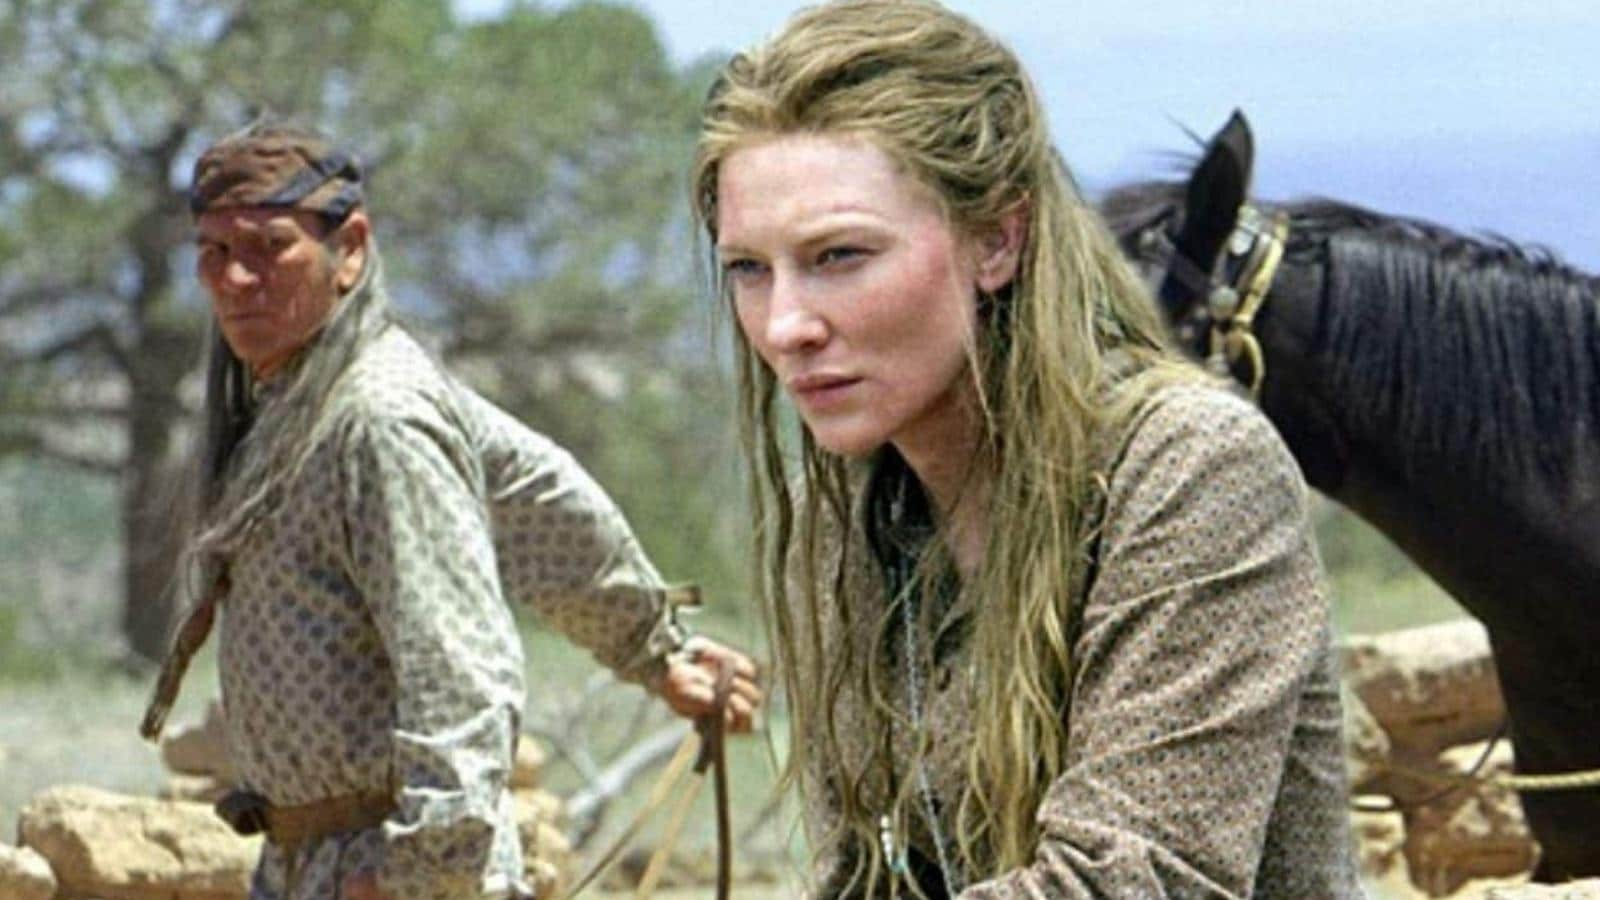 The Missing di Ron Howard con protagonista Cate Blanchett